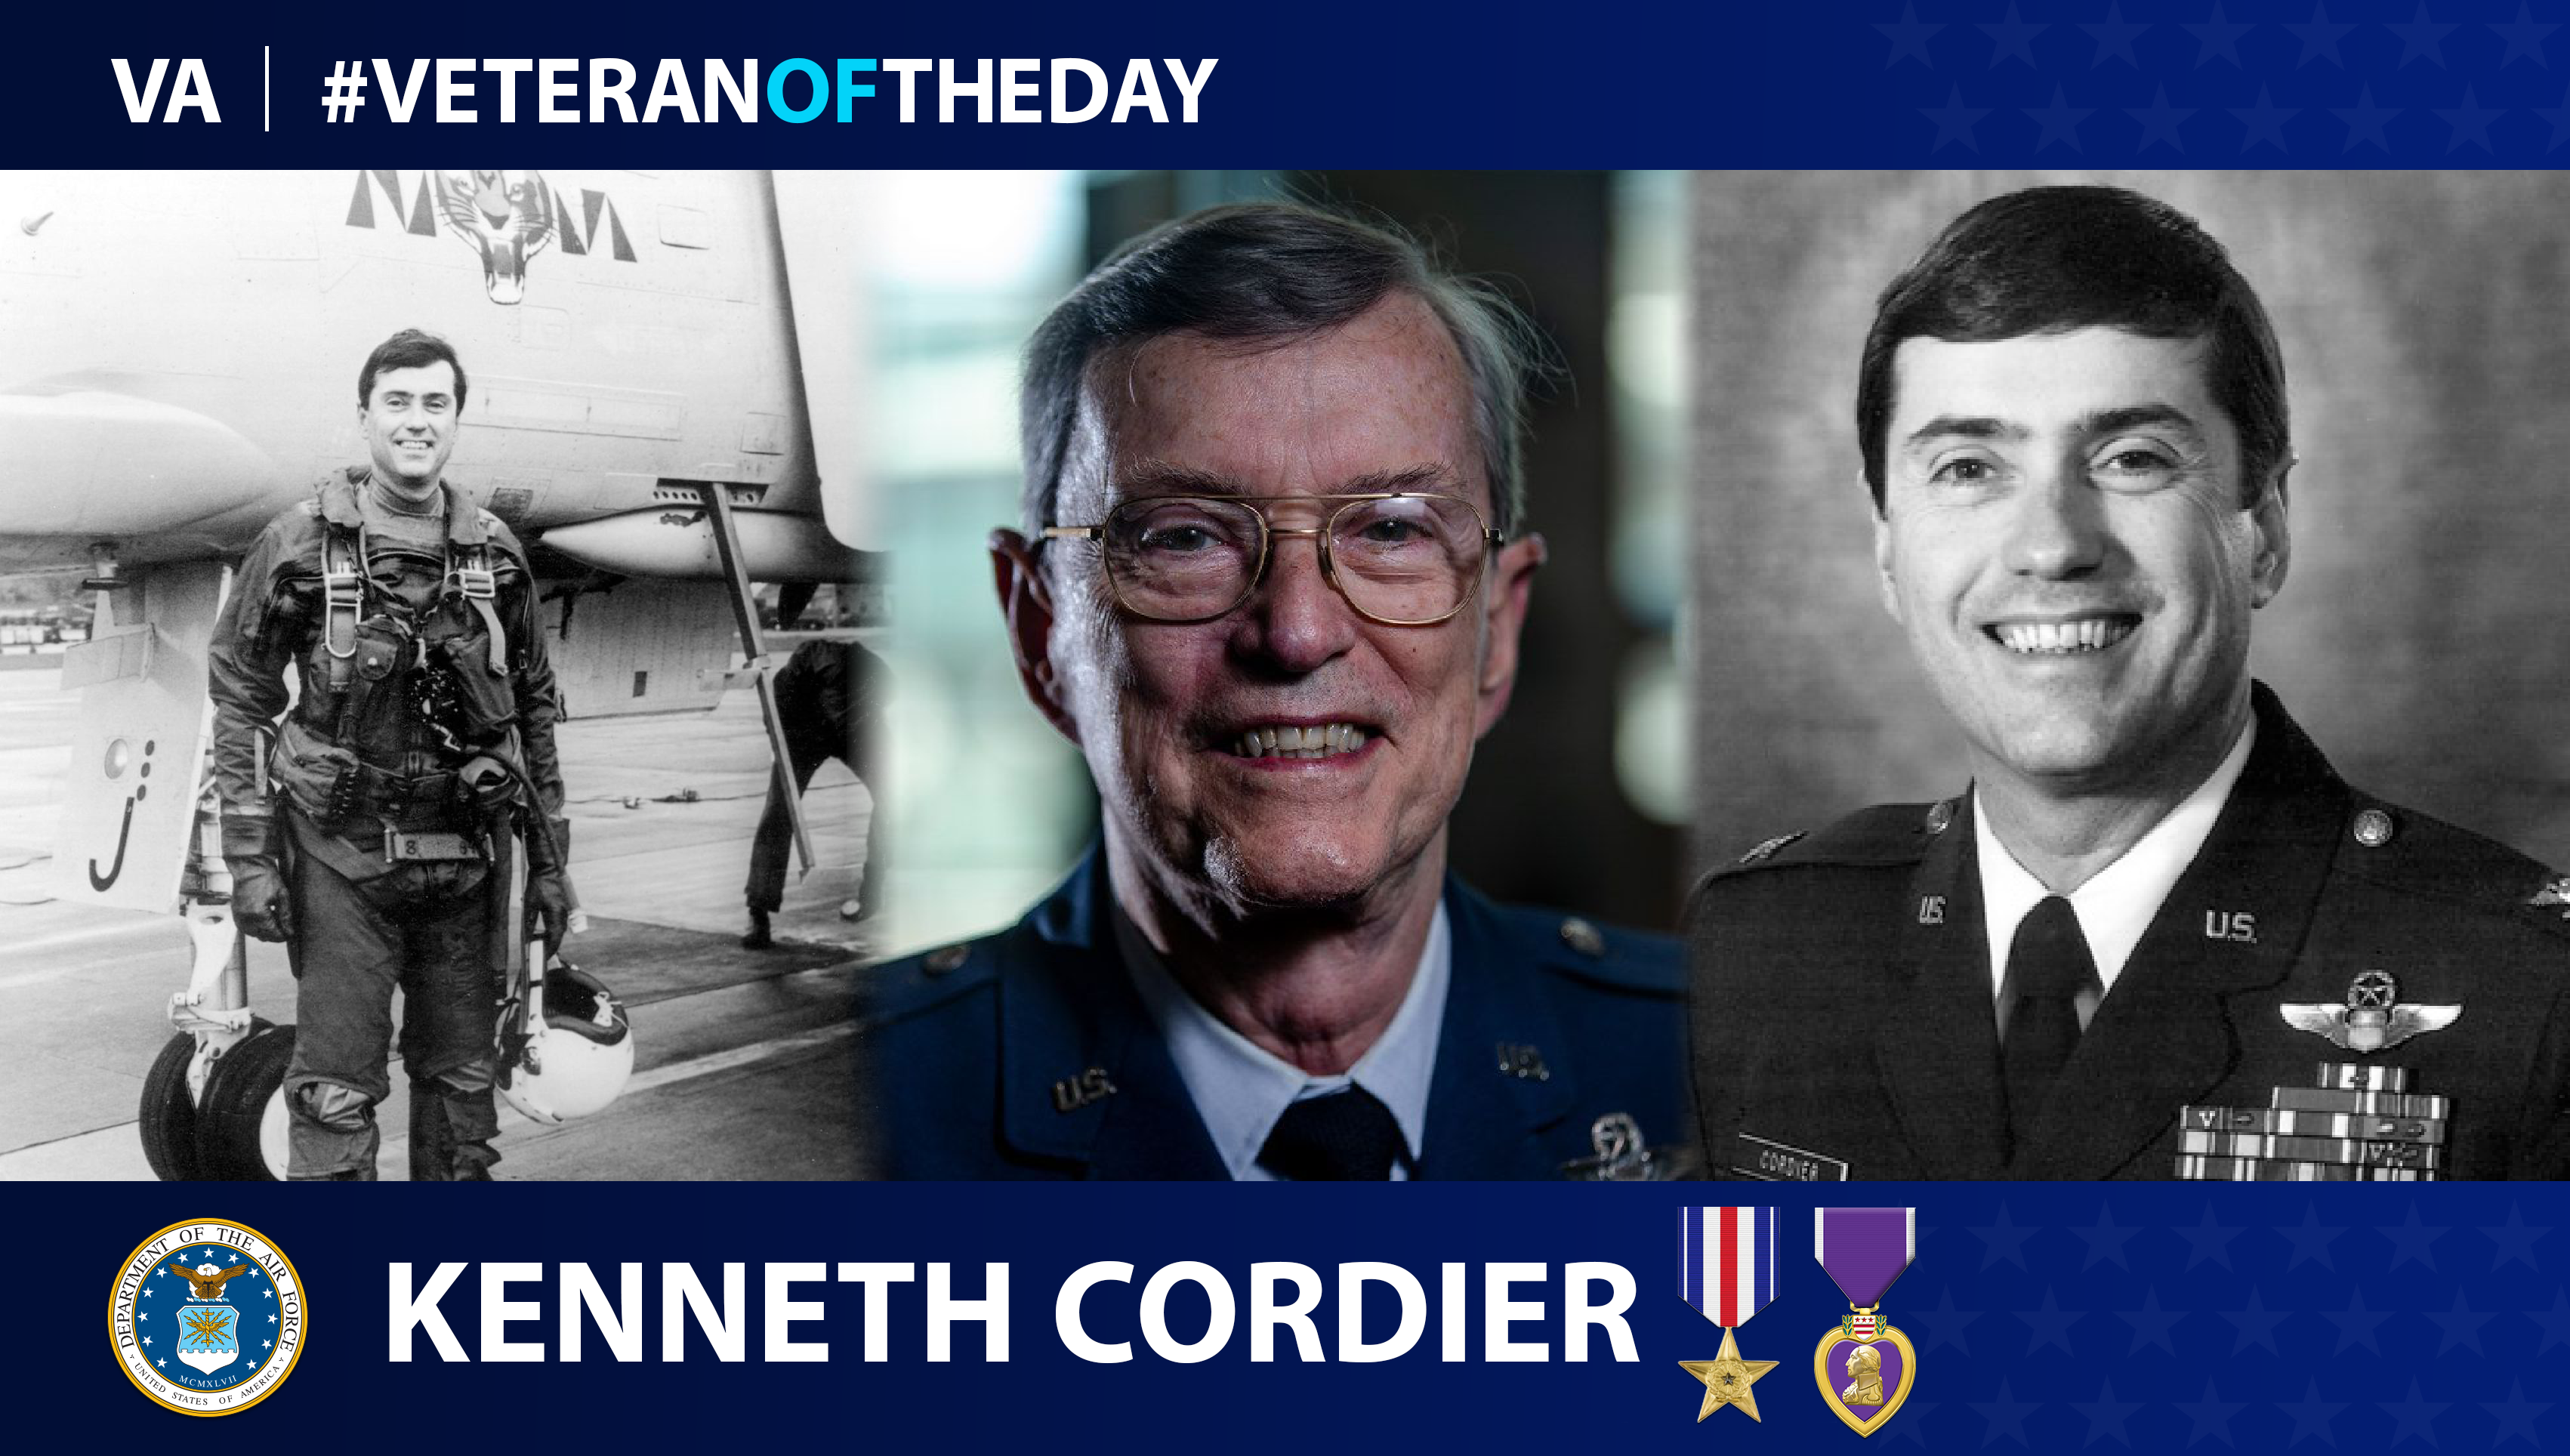 Air Force Veteran Kenneth Cordier is today's #VeteranOfTheDay